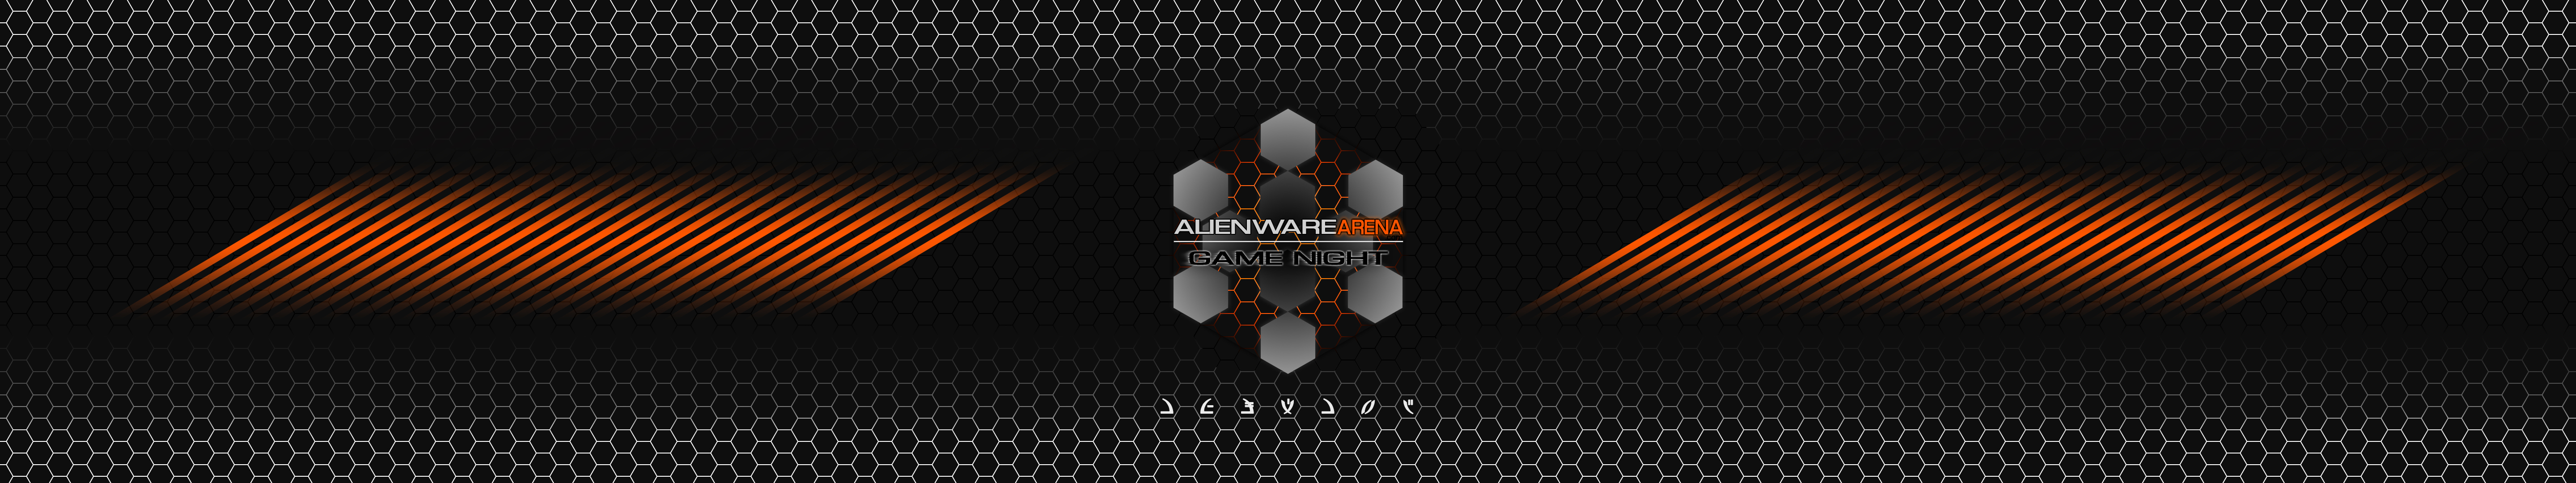 Alienware Arena Wallpaper For Collection 15 Wallpapers